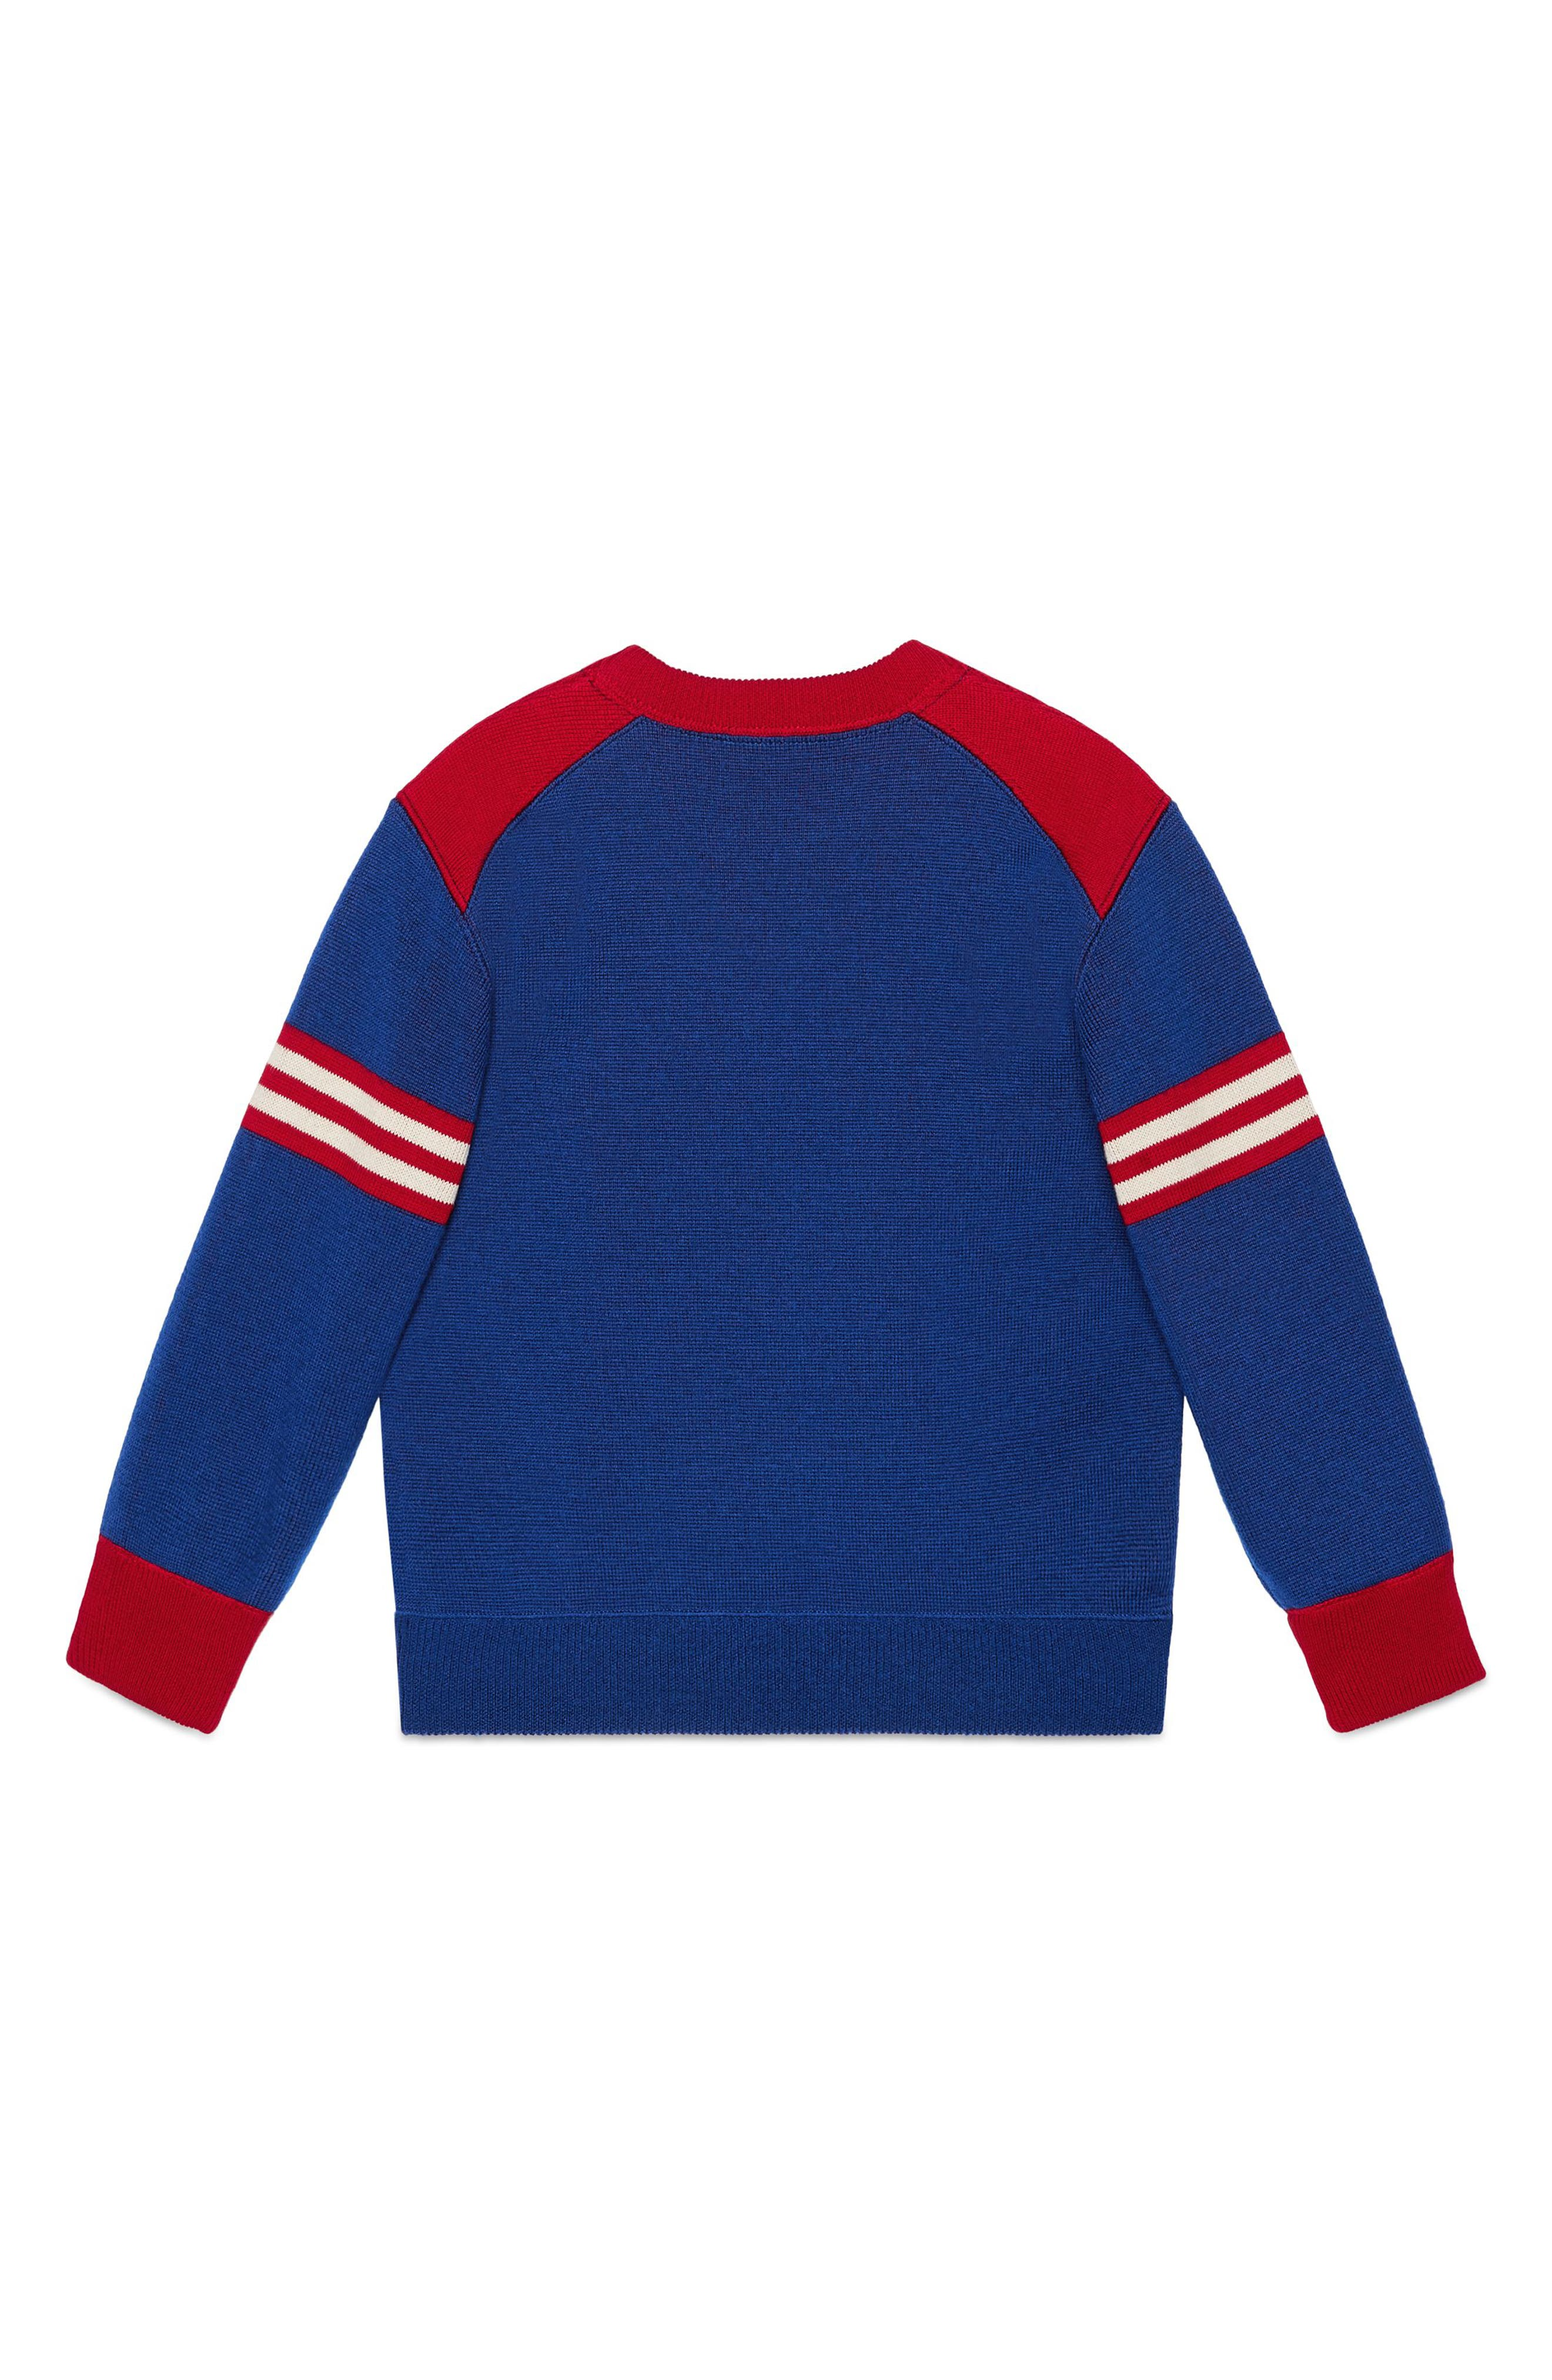 GUCCI,                             Embroidered Sweater,                             Alternate thumbnail 2, color,                             BLUE MULTI